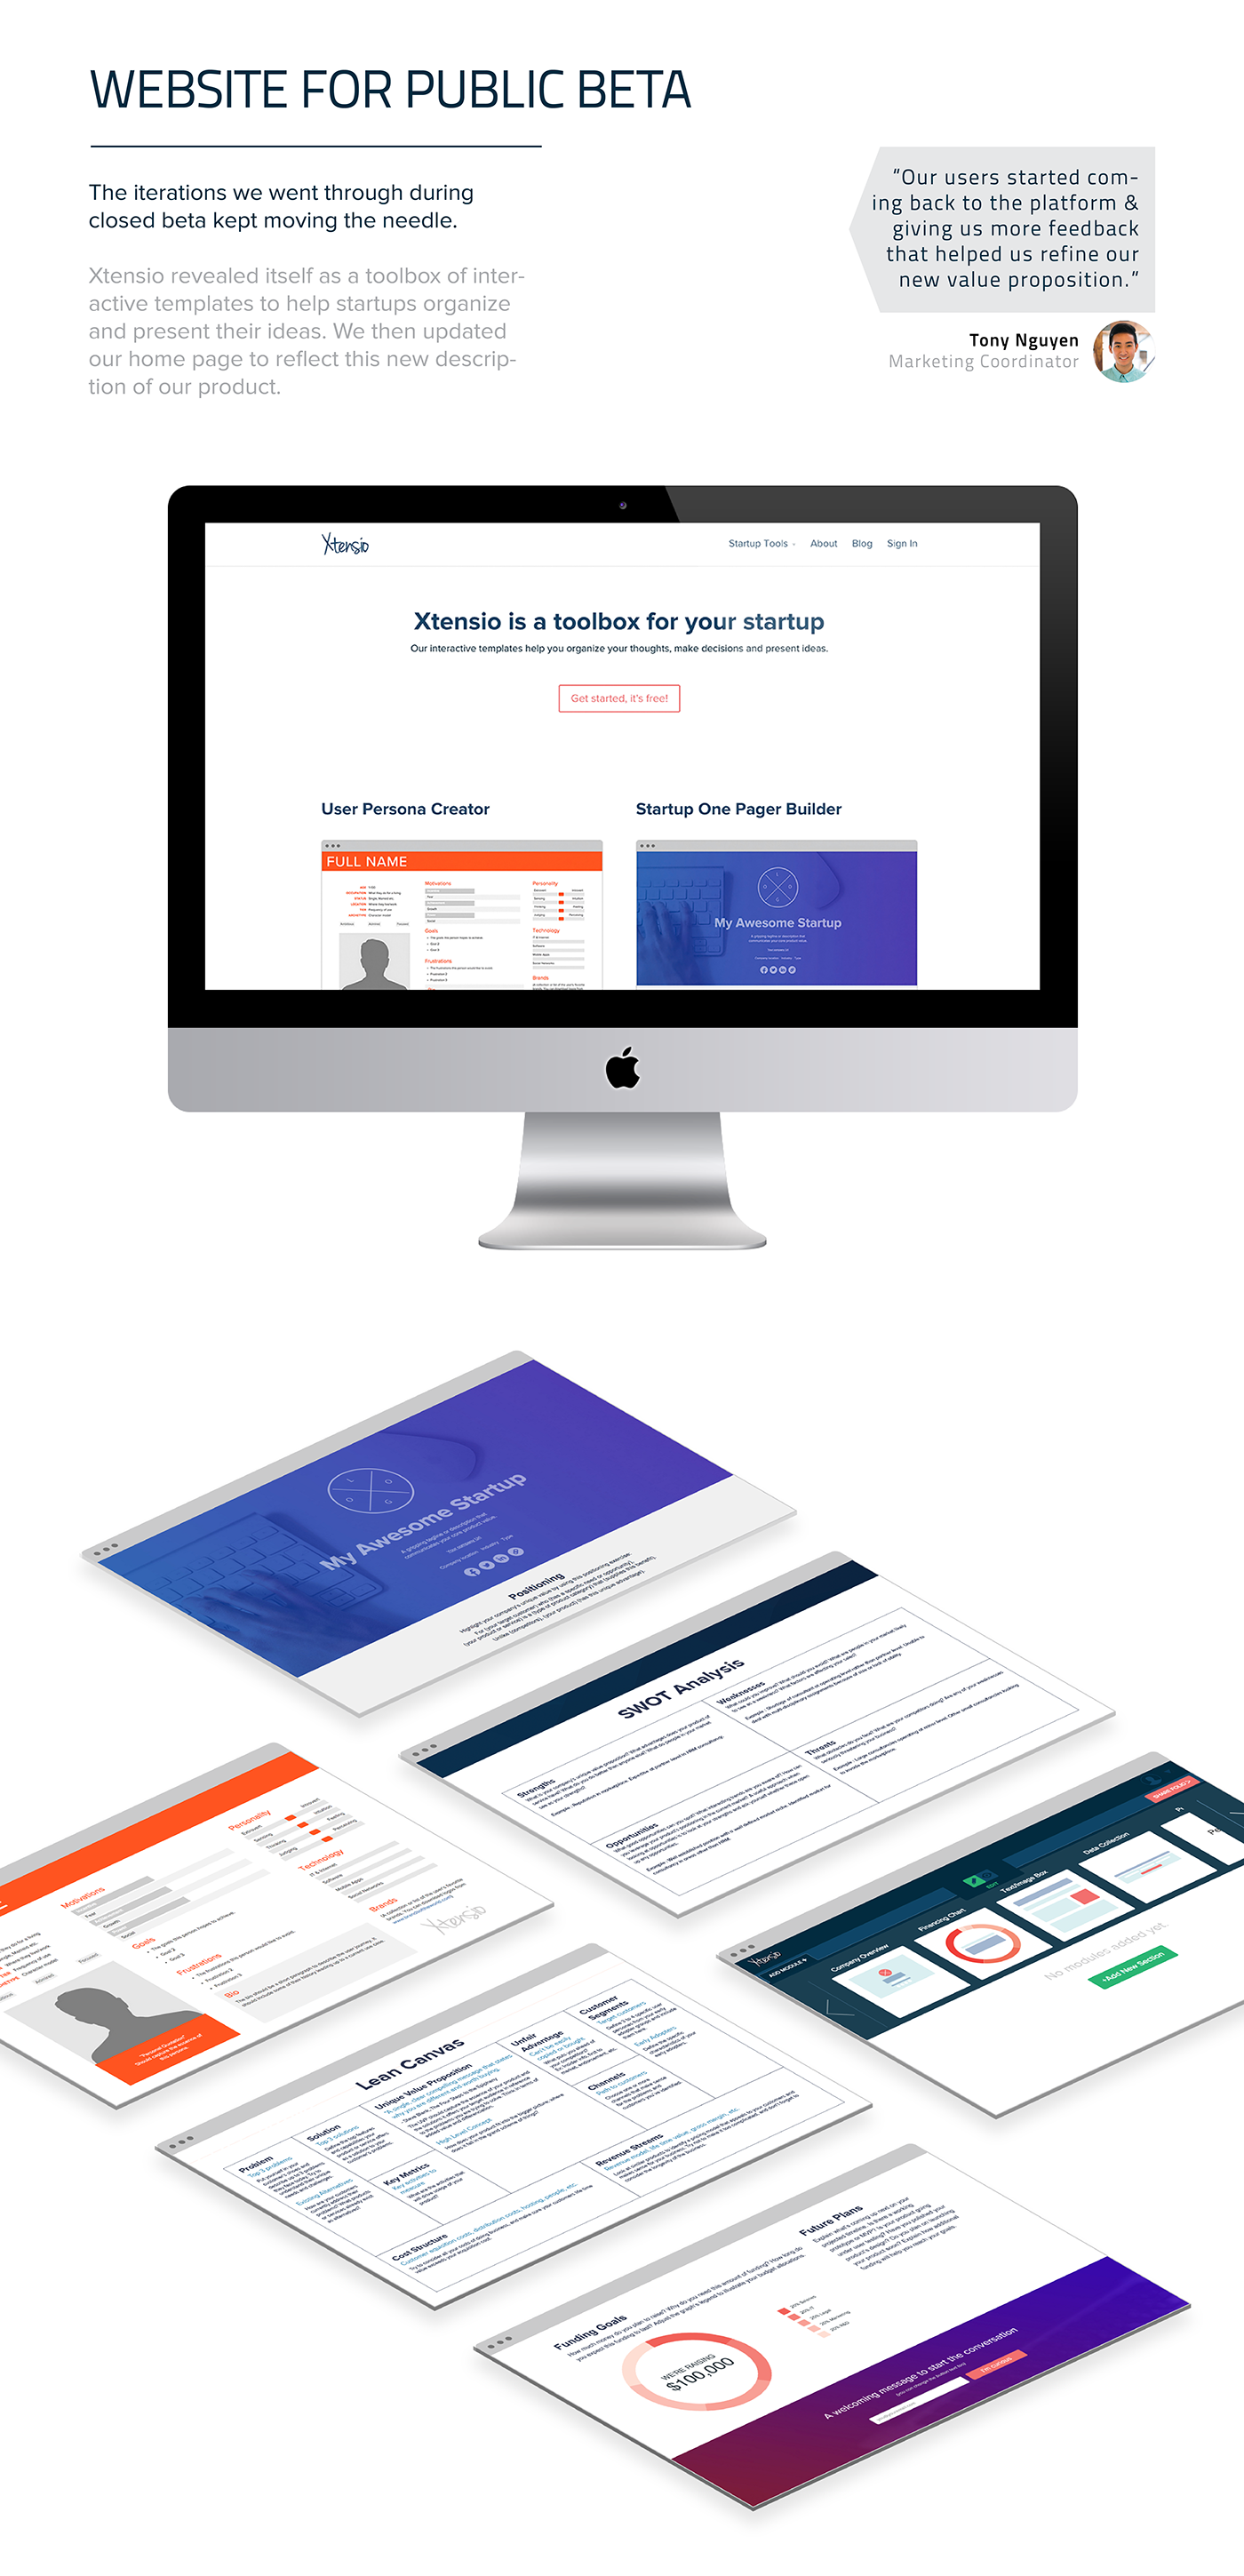 xtensio,one pager builder,user persona,lean canvas,swot analysis,startups,entrepreneurs,mvp,in-line editing,drag and drop,SAAS,design tools